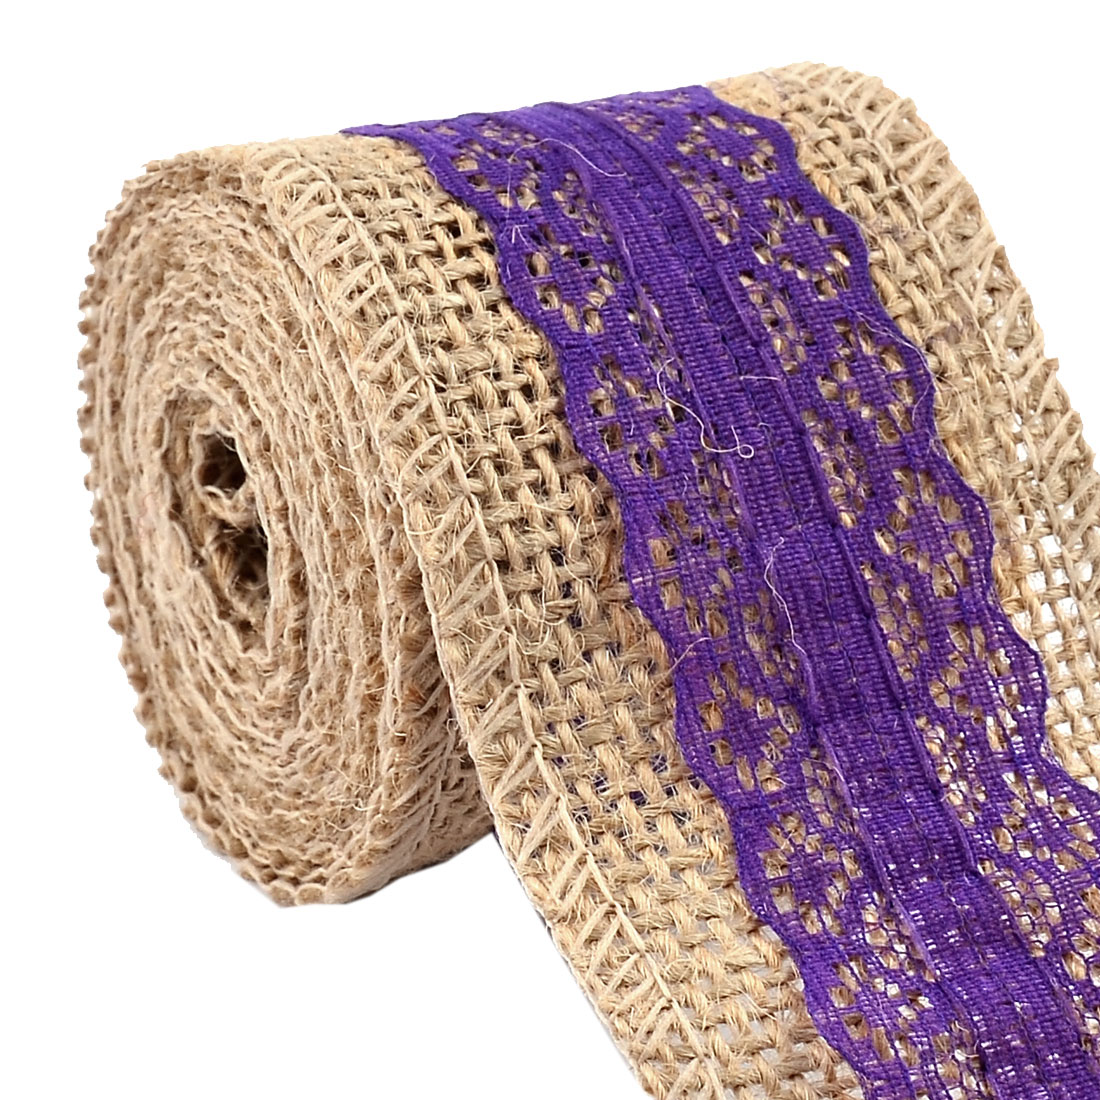 Wedding Burlap Belt Strap String Crafting Lace Trim Edge Ribbon Roll Purple 2.2 Yards